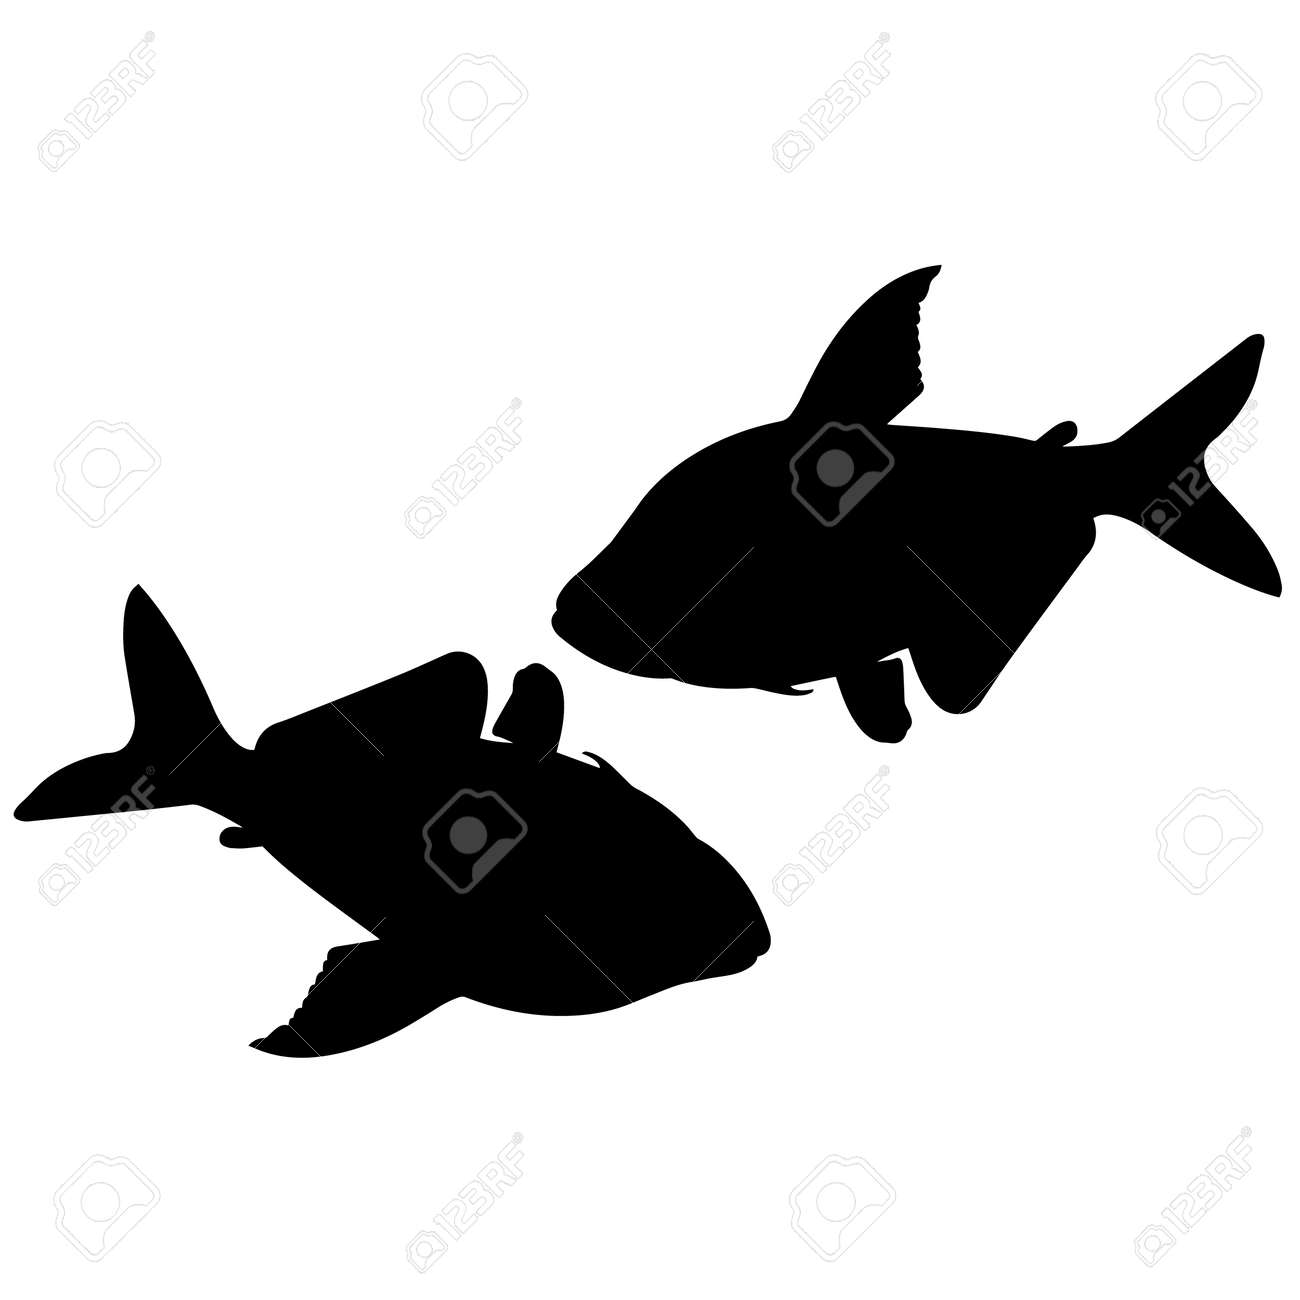 Guppy Silhouette Vector Graphics - 157908828